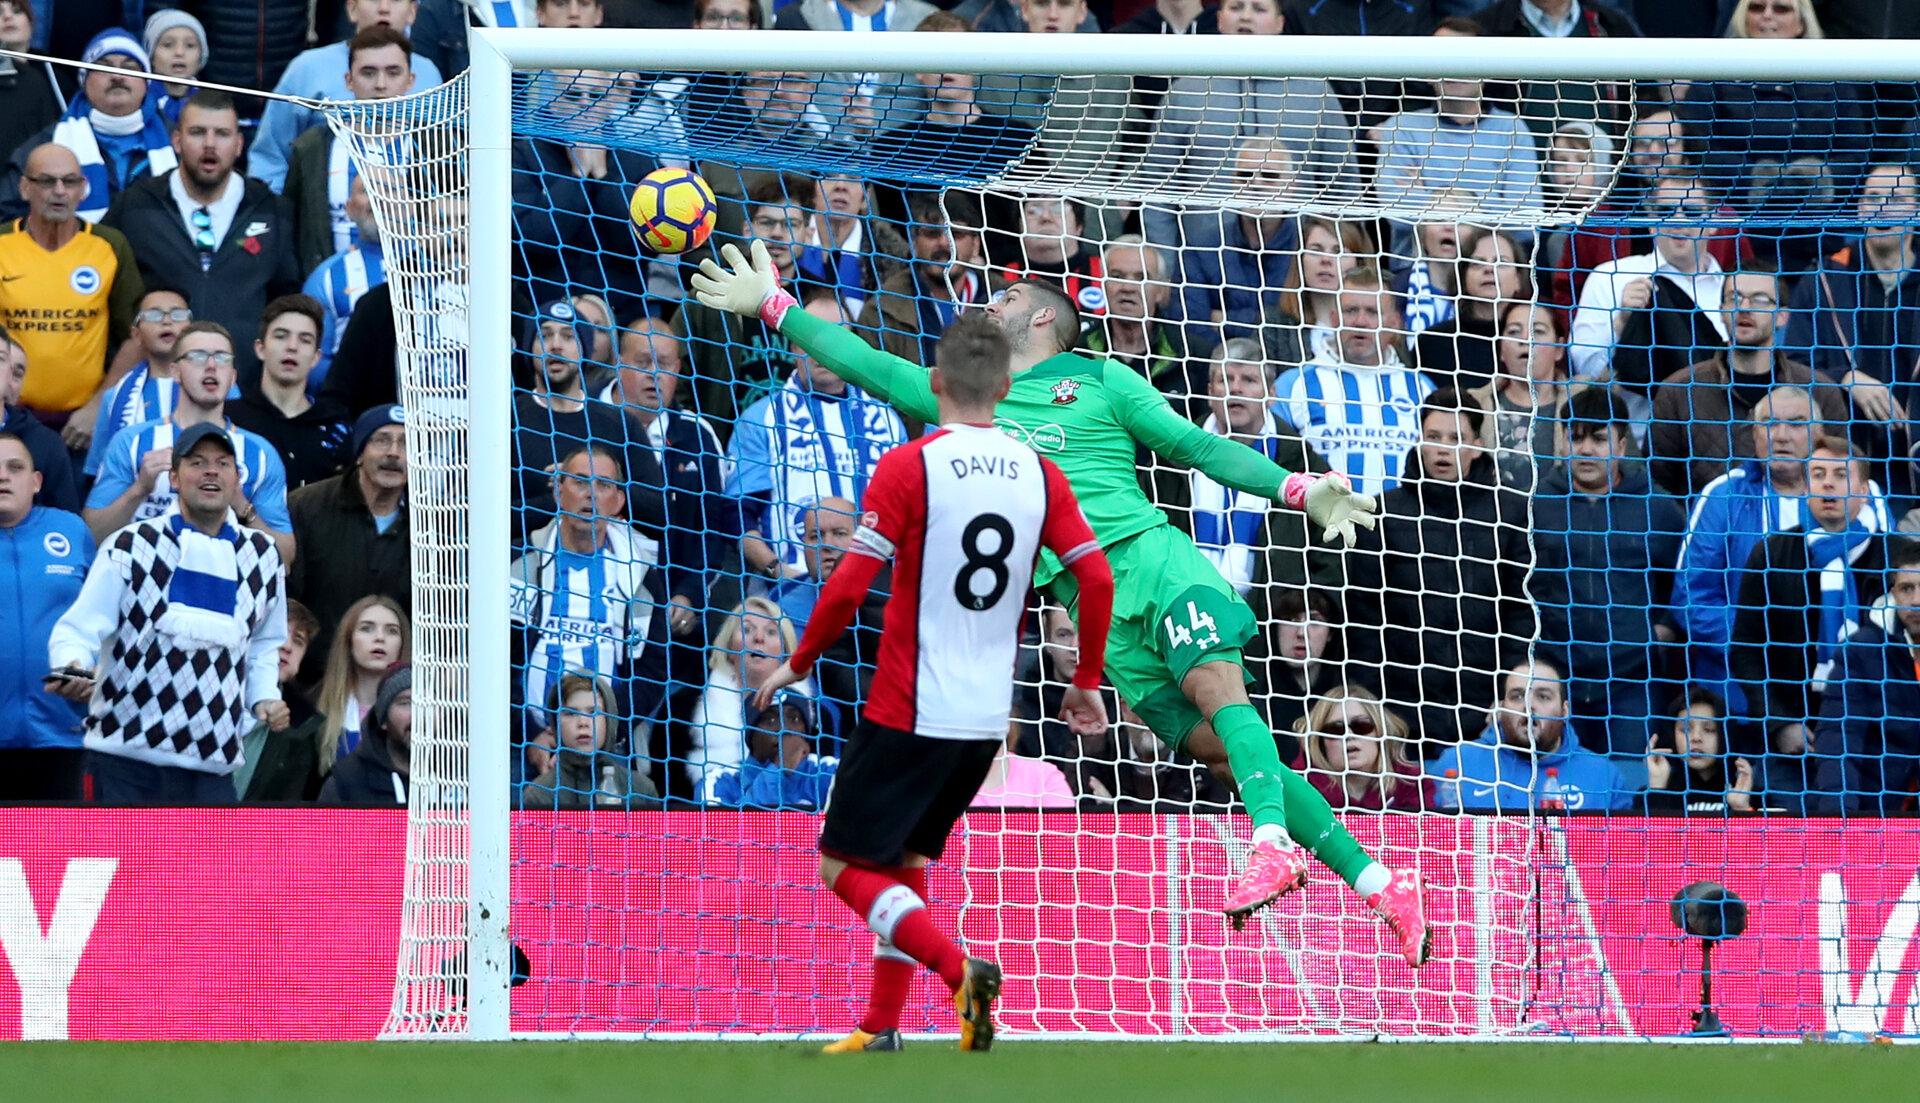 BRIGHTON, ENGLAND - OCTOBER 29: Southampton keeper Fraser Forster is beaten by the header of Glenn Murray during the Premier League match between Brighton and Hove Albion and Southampton at the Amex Stadium on October 28, 2017 in Brighton, England. (Photo by Matt Watson/Southampton FC via Getty Images)